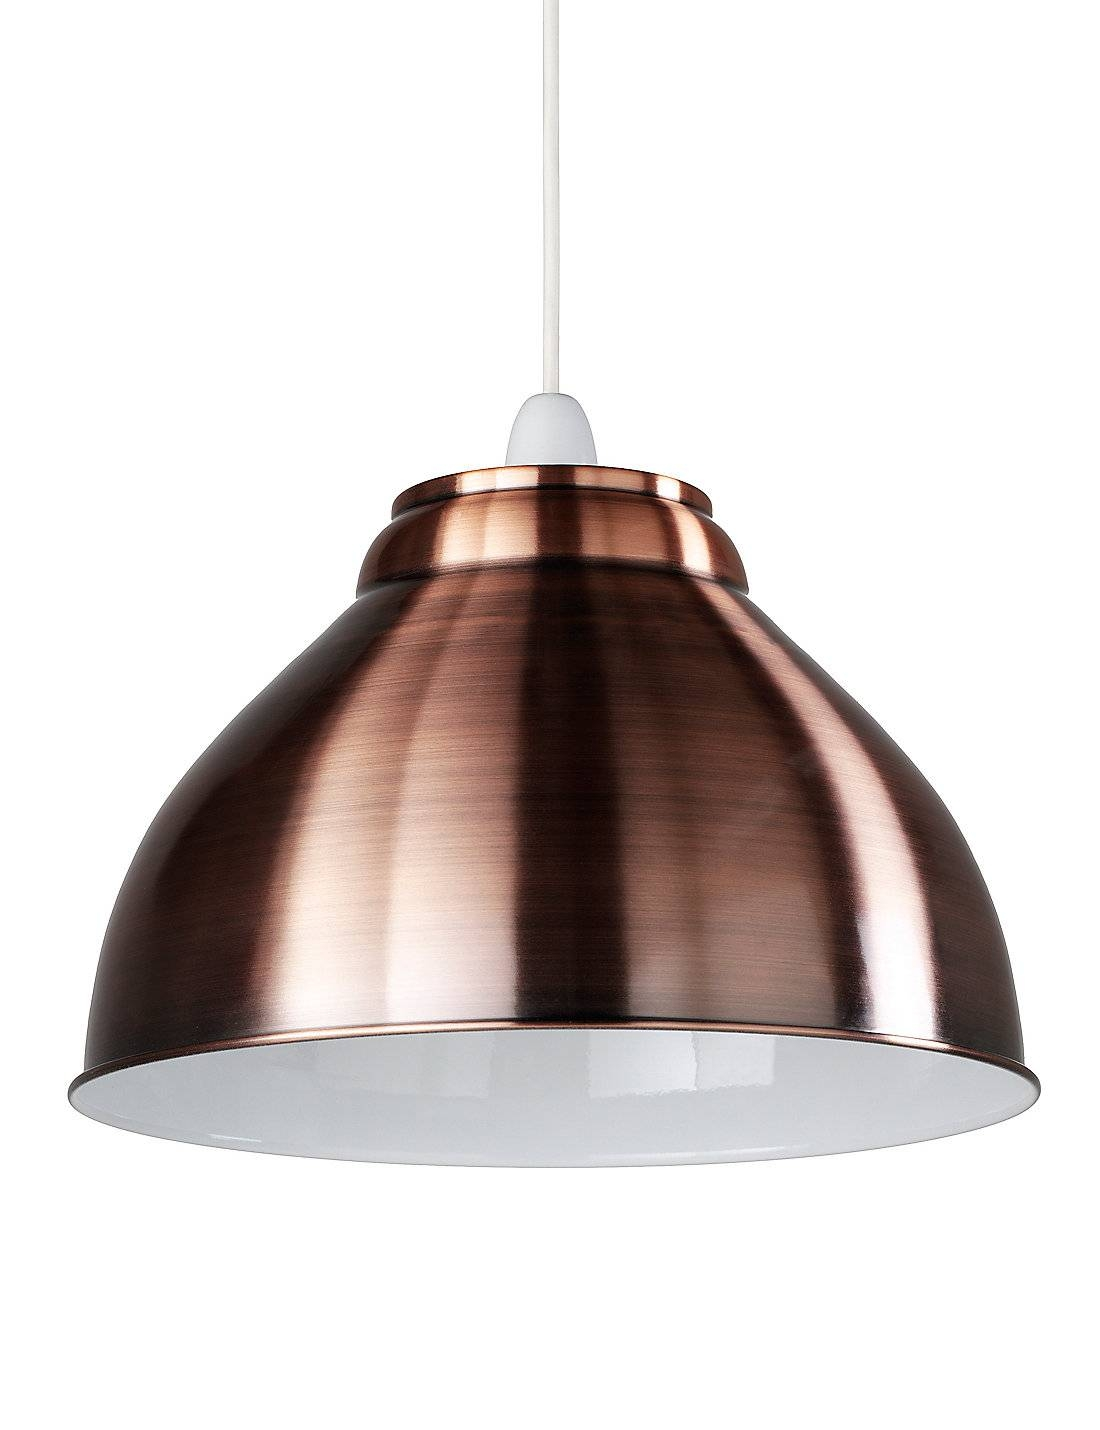 Adding Beauty And Decor To Your House With The Gold Ceiling Light throughout John Lewis Glass Lamp Shades (Image 1 of 15)